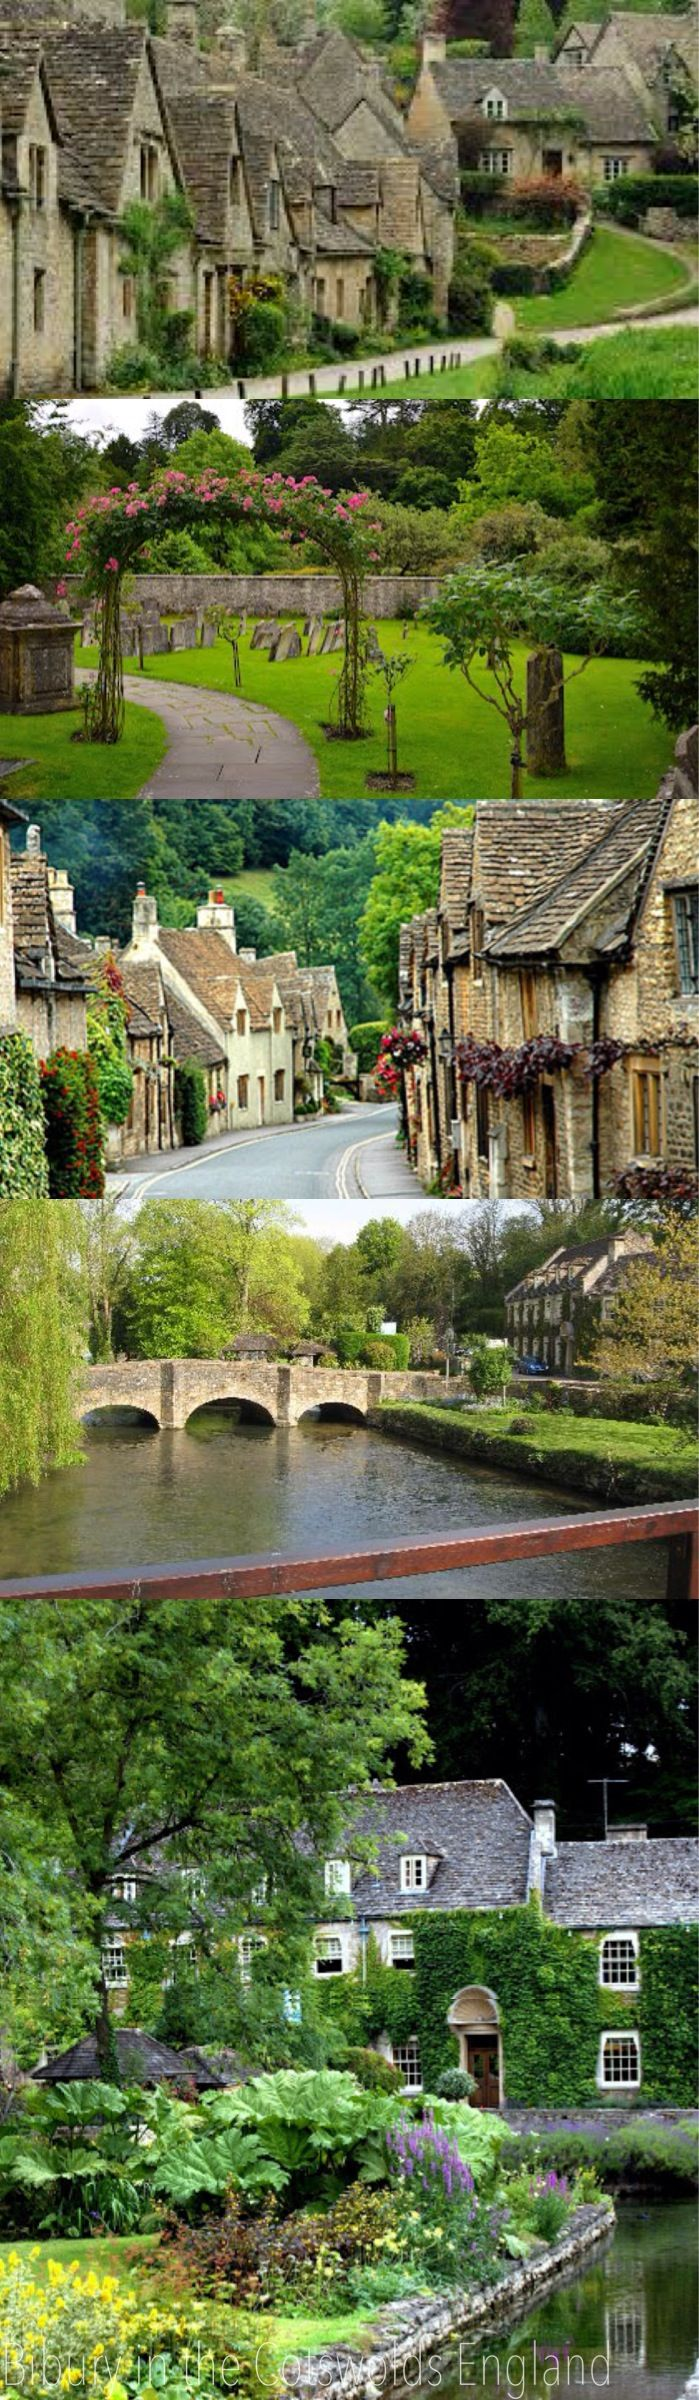 Longing to wander these streets again ... right now PLEASE -- the Cotswolds England